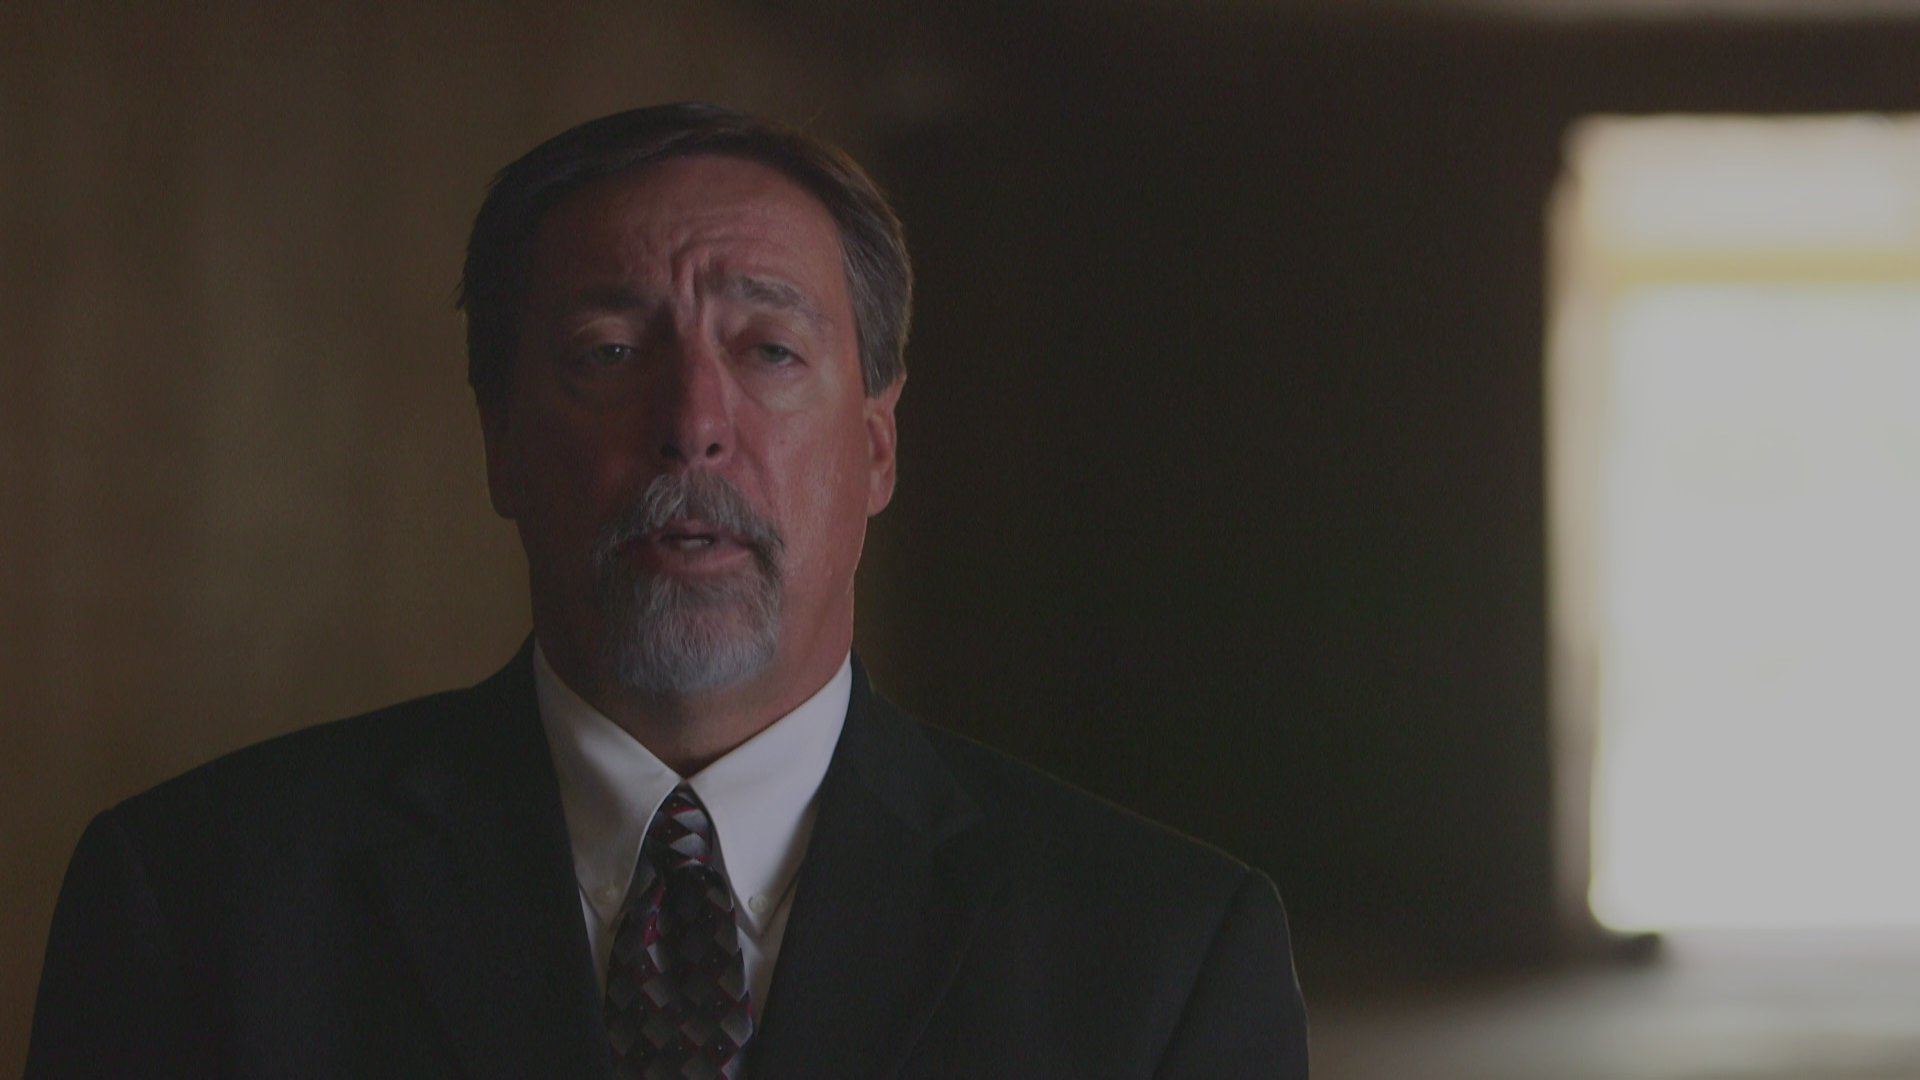 Mark of a Killer Bonus: Roger Kibbe Gave Explicit Details of His First Victim to Law Enforcement (Season 1, Episode 4)